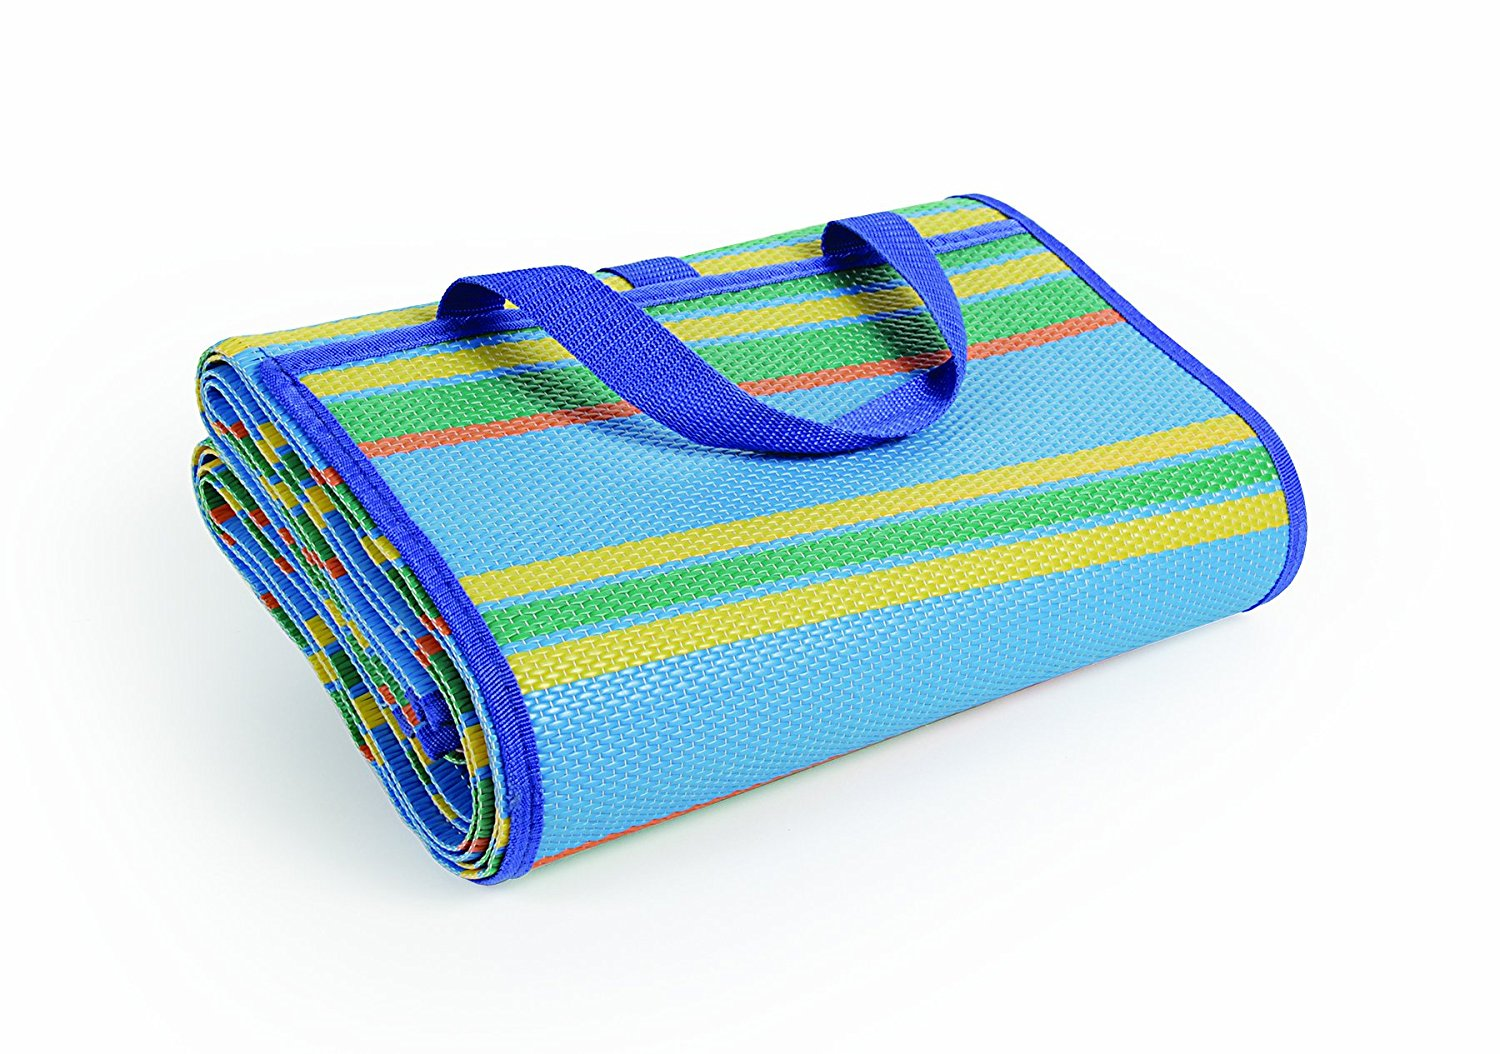 Camco Handy Beach Mat with Strap